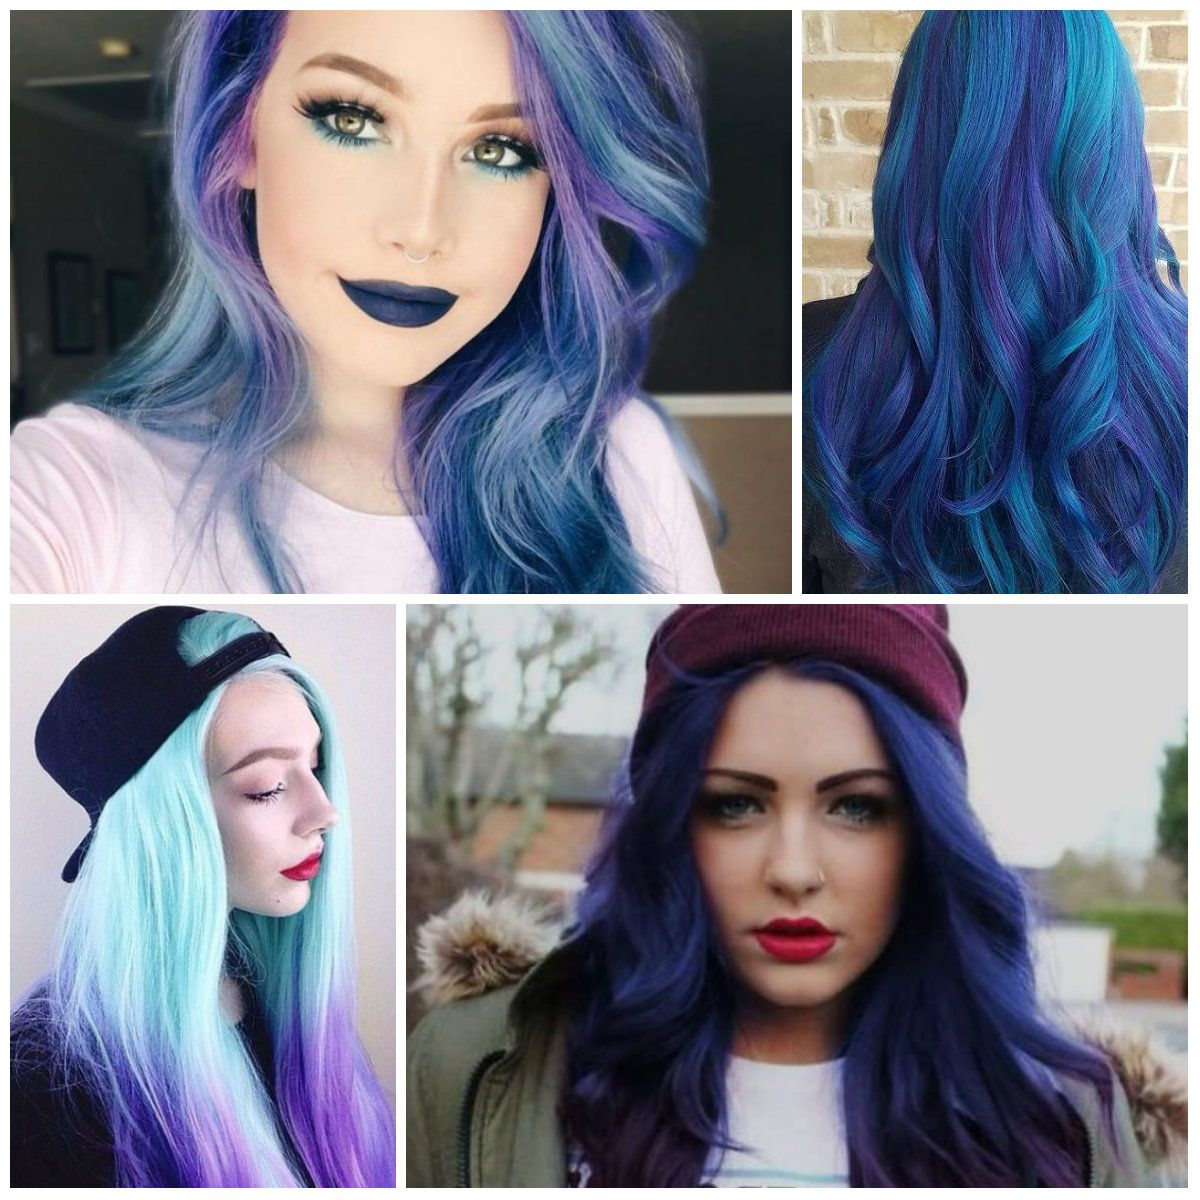 Wonderful blue and purple hair colors for short hairstyles